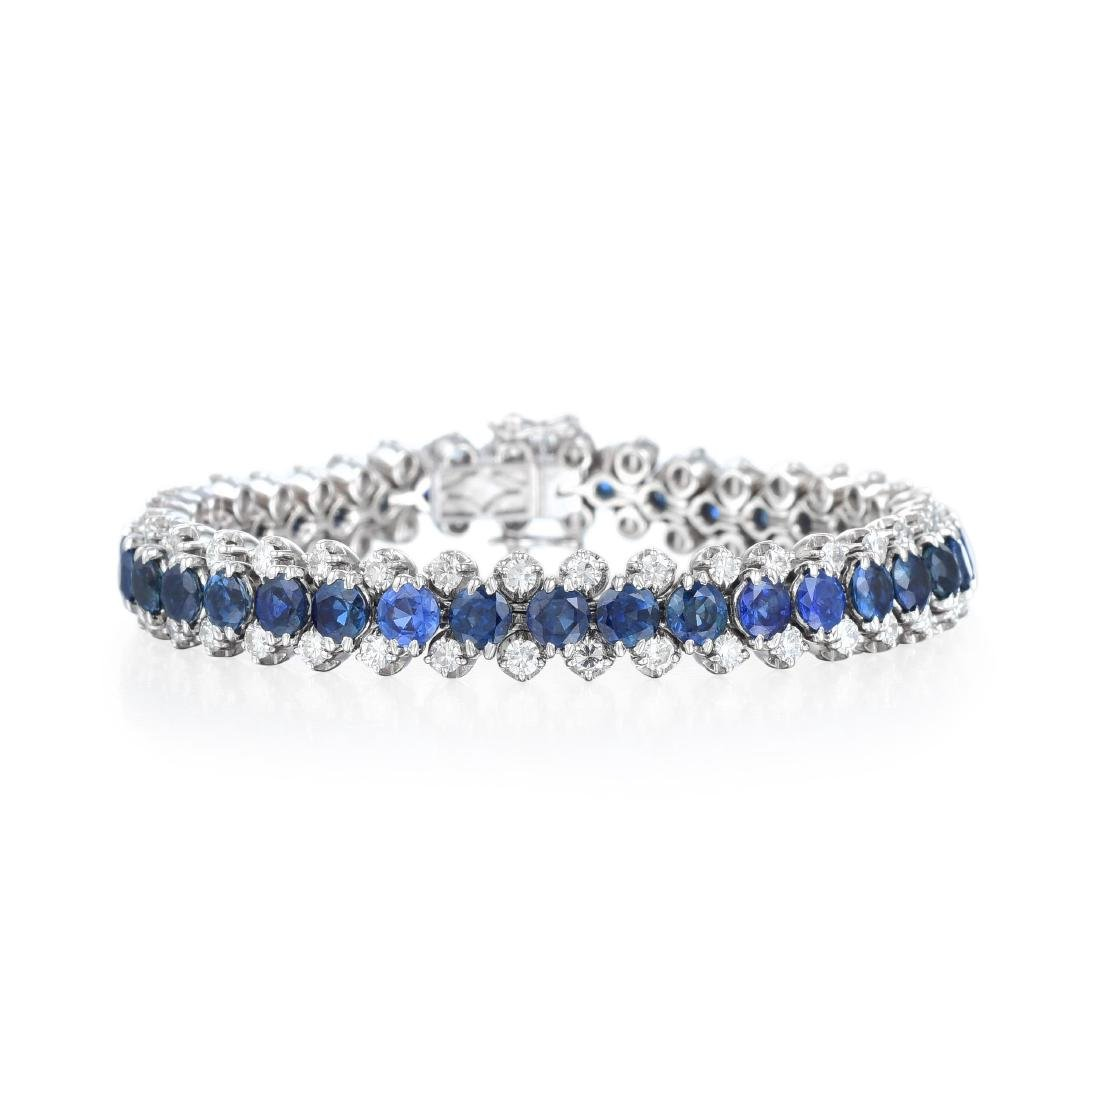 A Sapphire and Diamond Necklace and Bracelet Set - 3